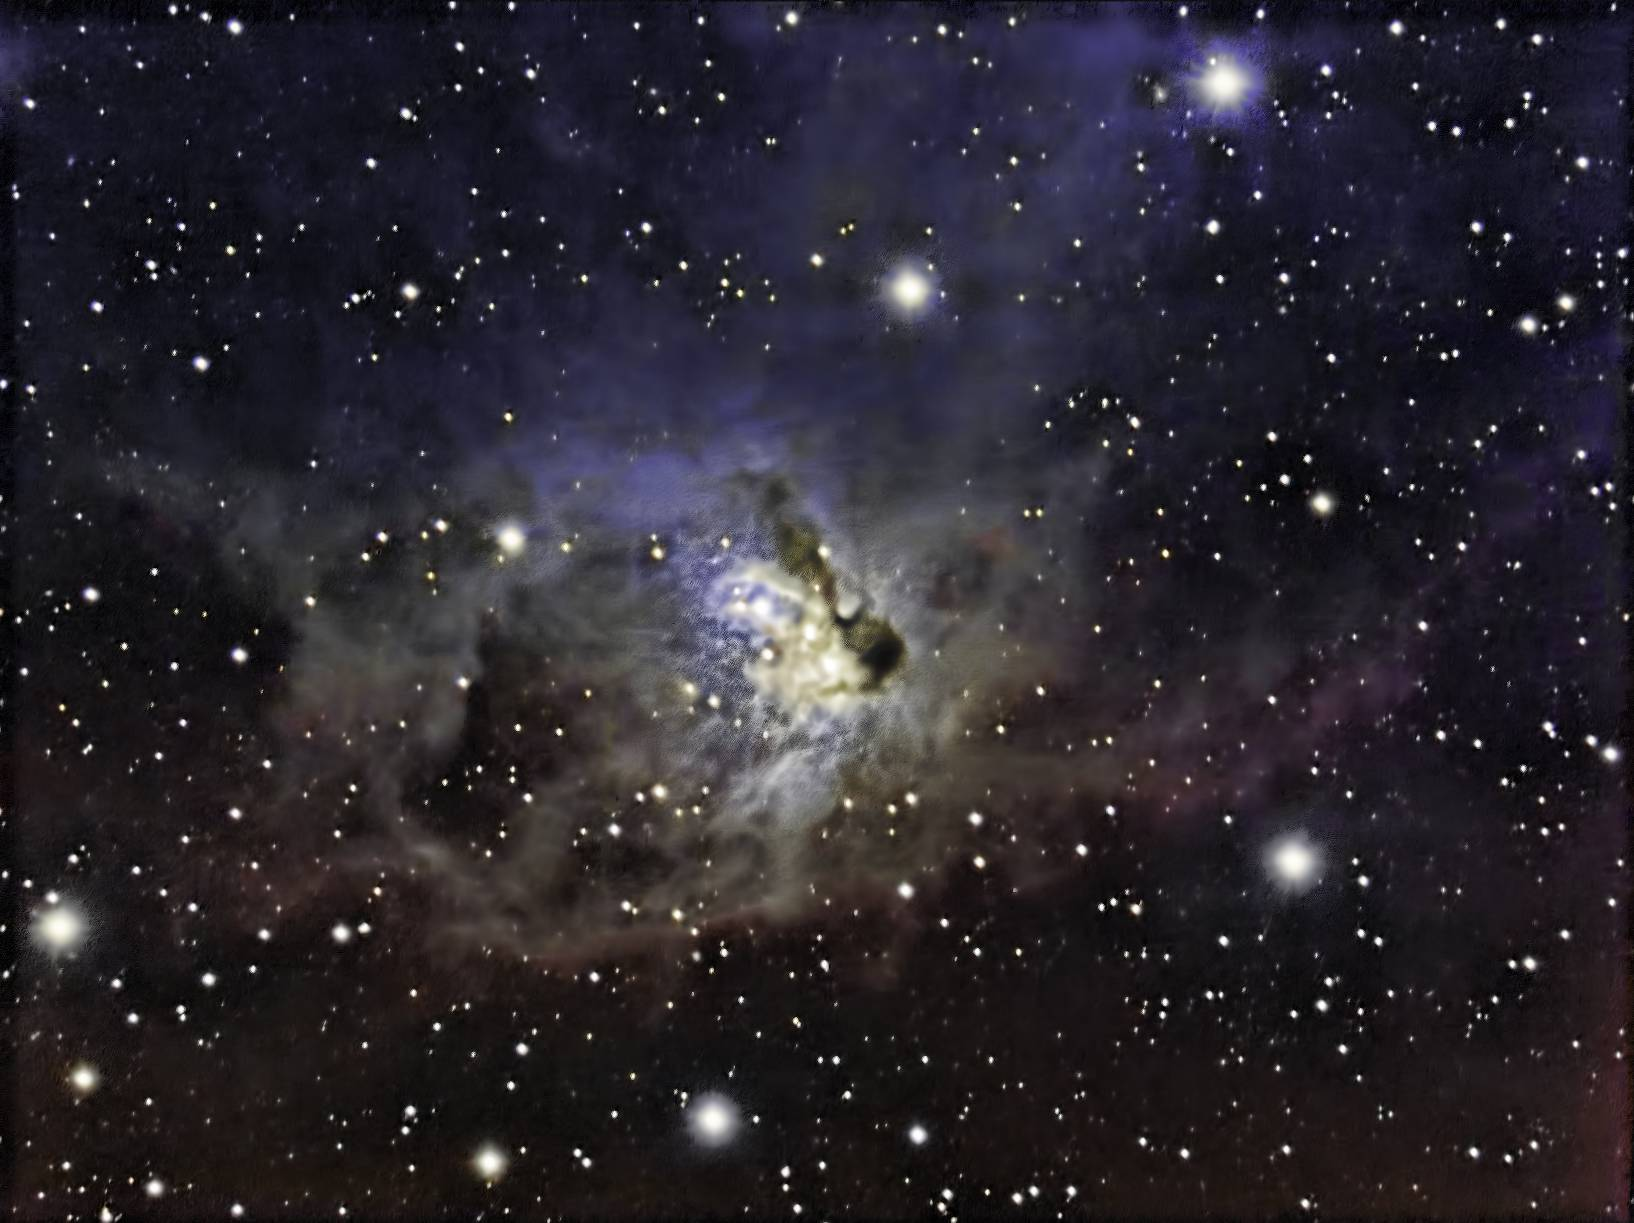 The Fox Face Nebula (NGC 1788) in Orion - Astronomy Magazine